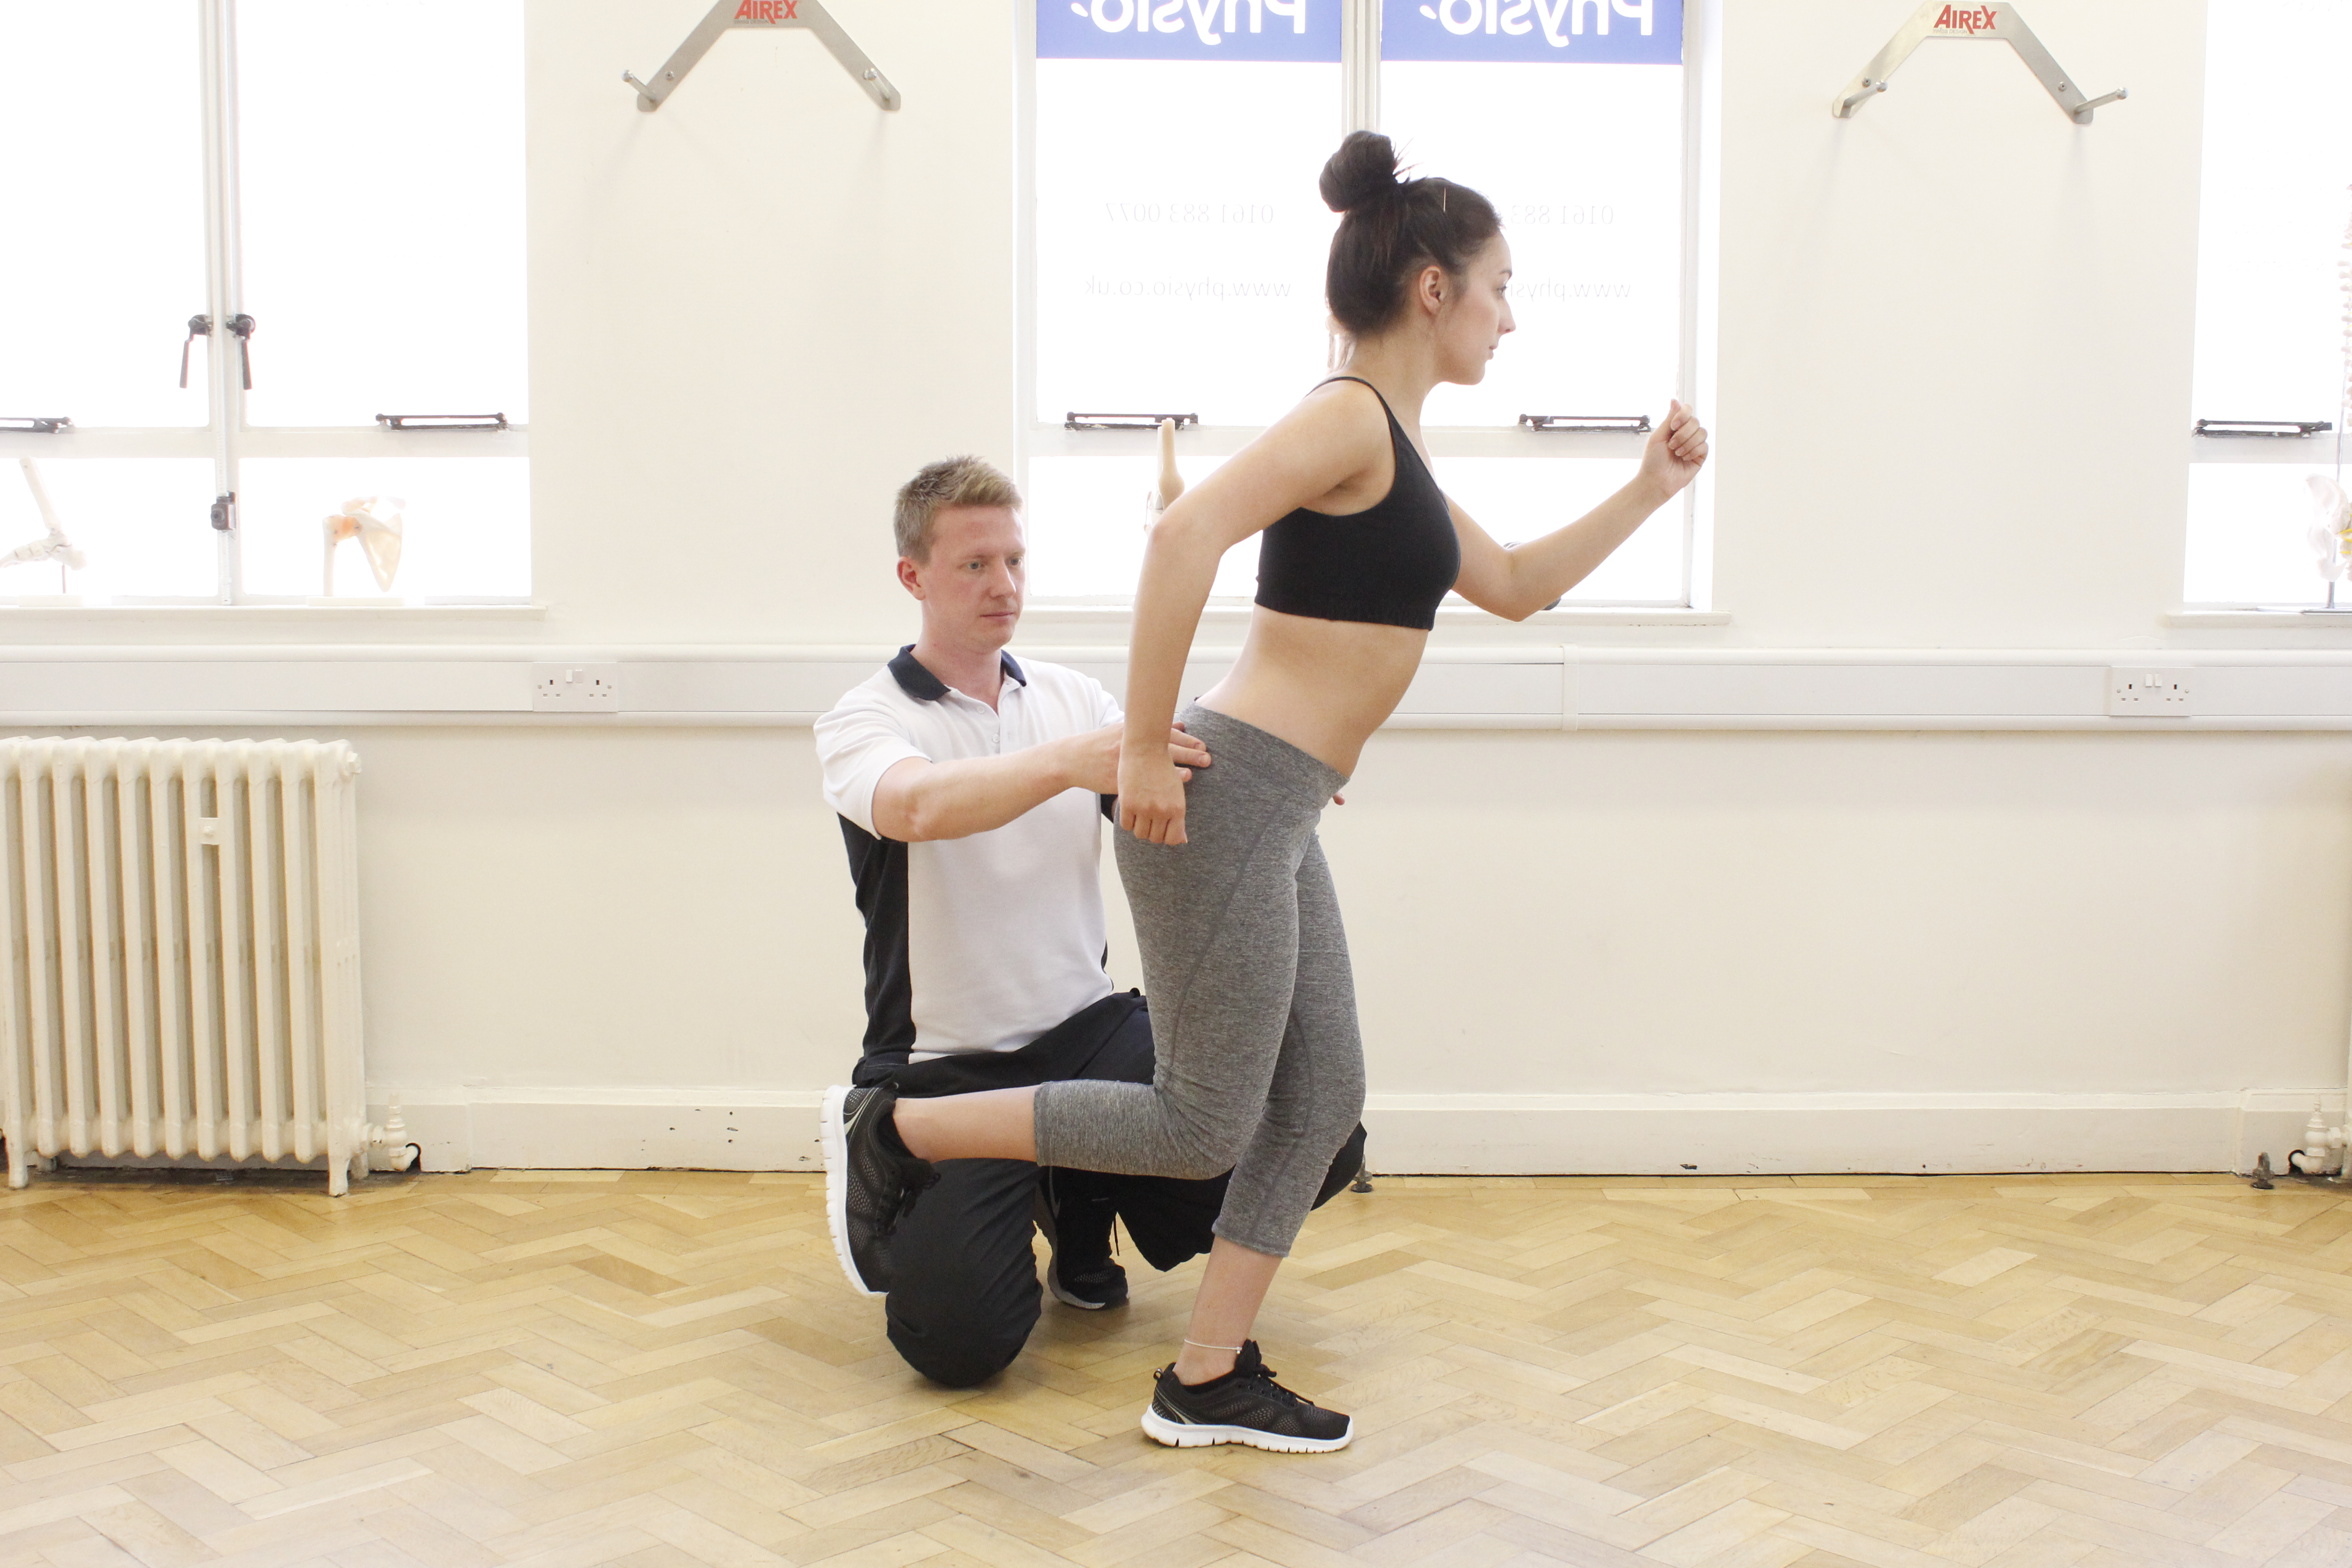 Physiotherapist guiding athlete with posture